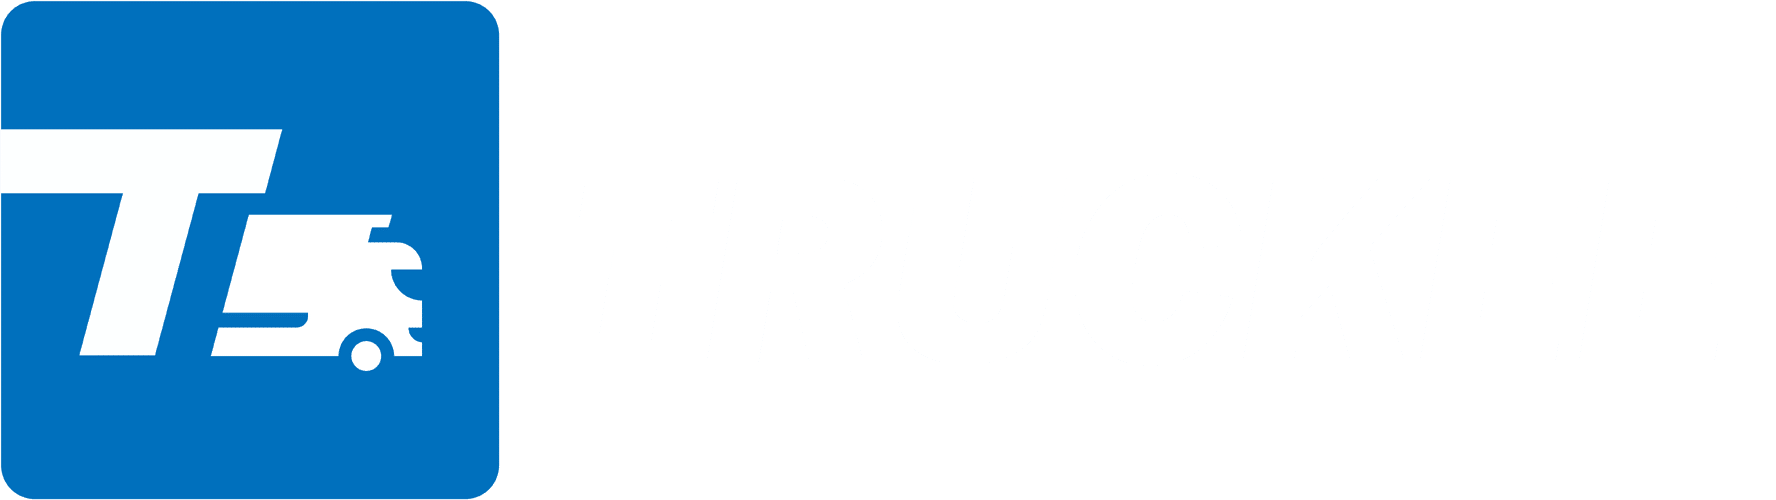 Truckee | Manage LR, Freight Slip and Vehicle data